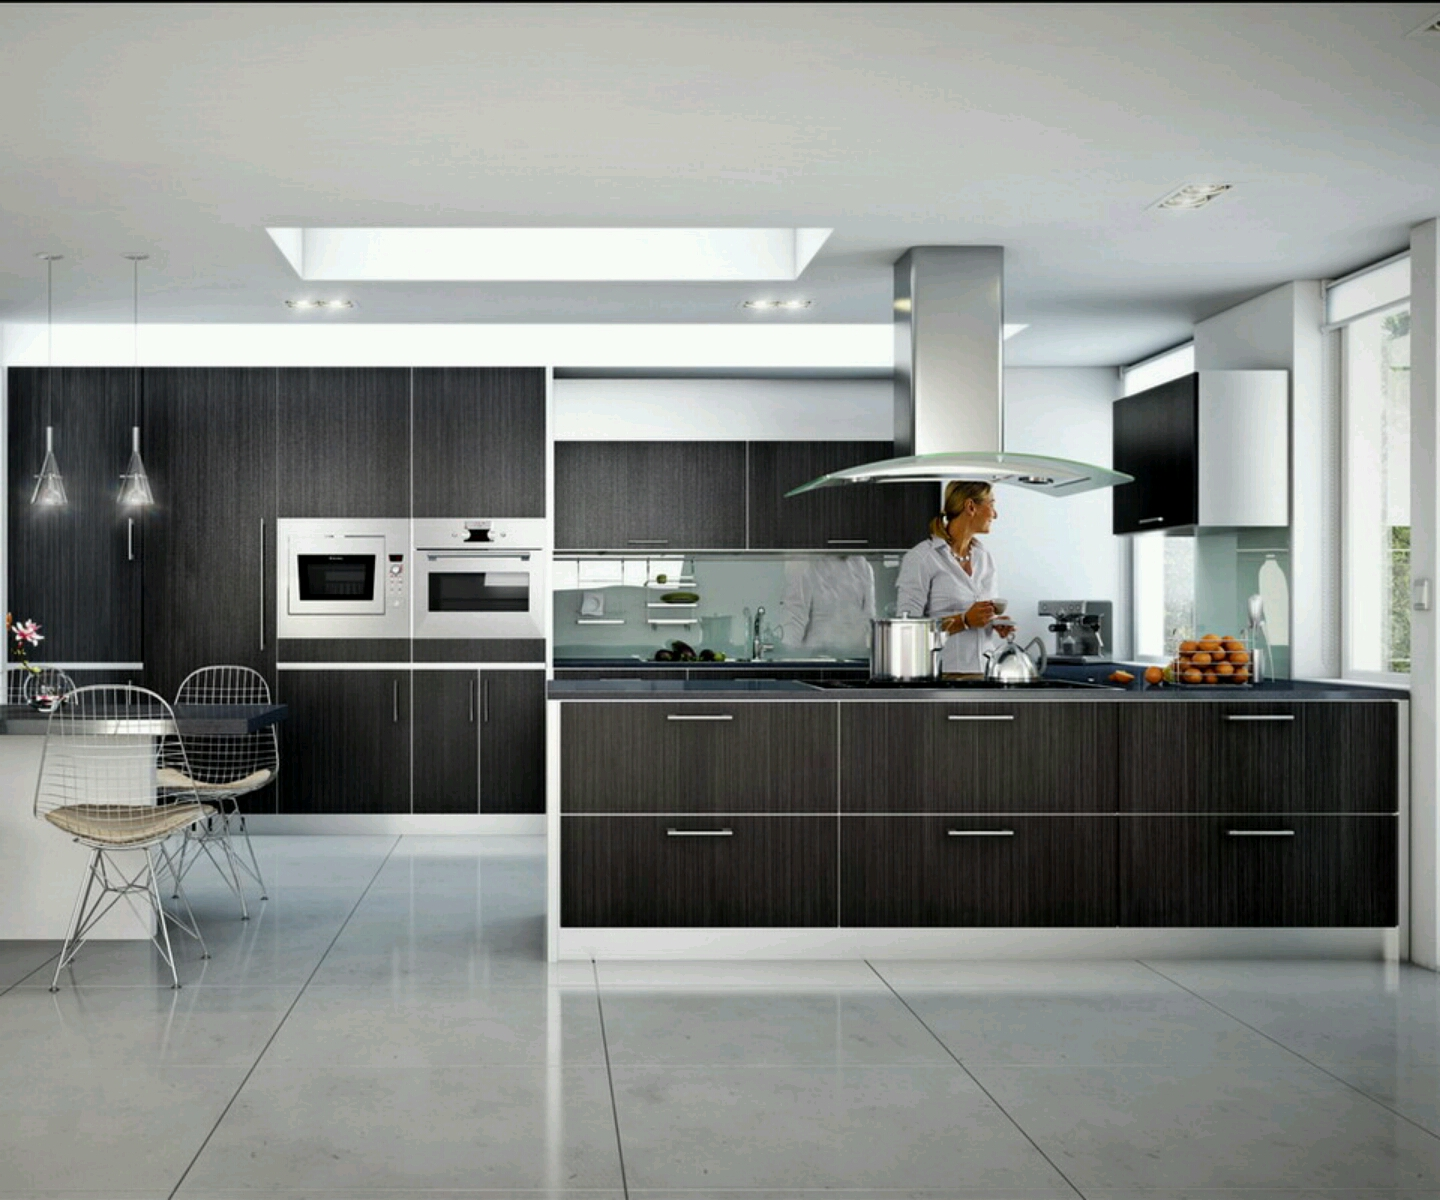 modern-kitchen-cabinets-design-as-modern-kitchen-design-with-added-design-Kitchen-and-fascinating-to-various-settings-layout-of-the-room-Kitchen-fascinating-60